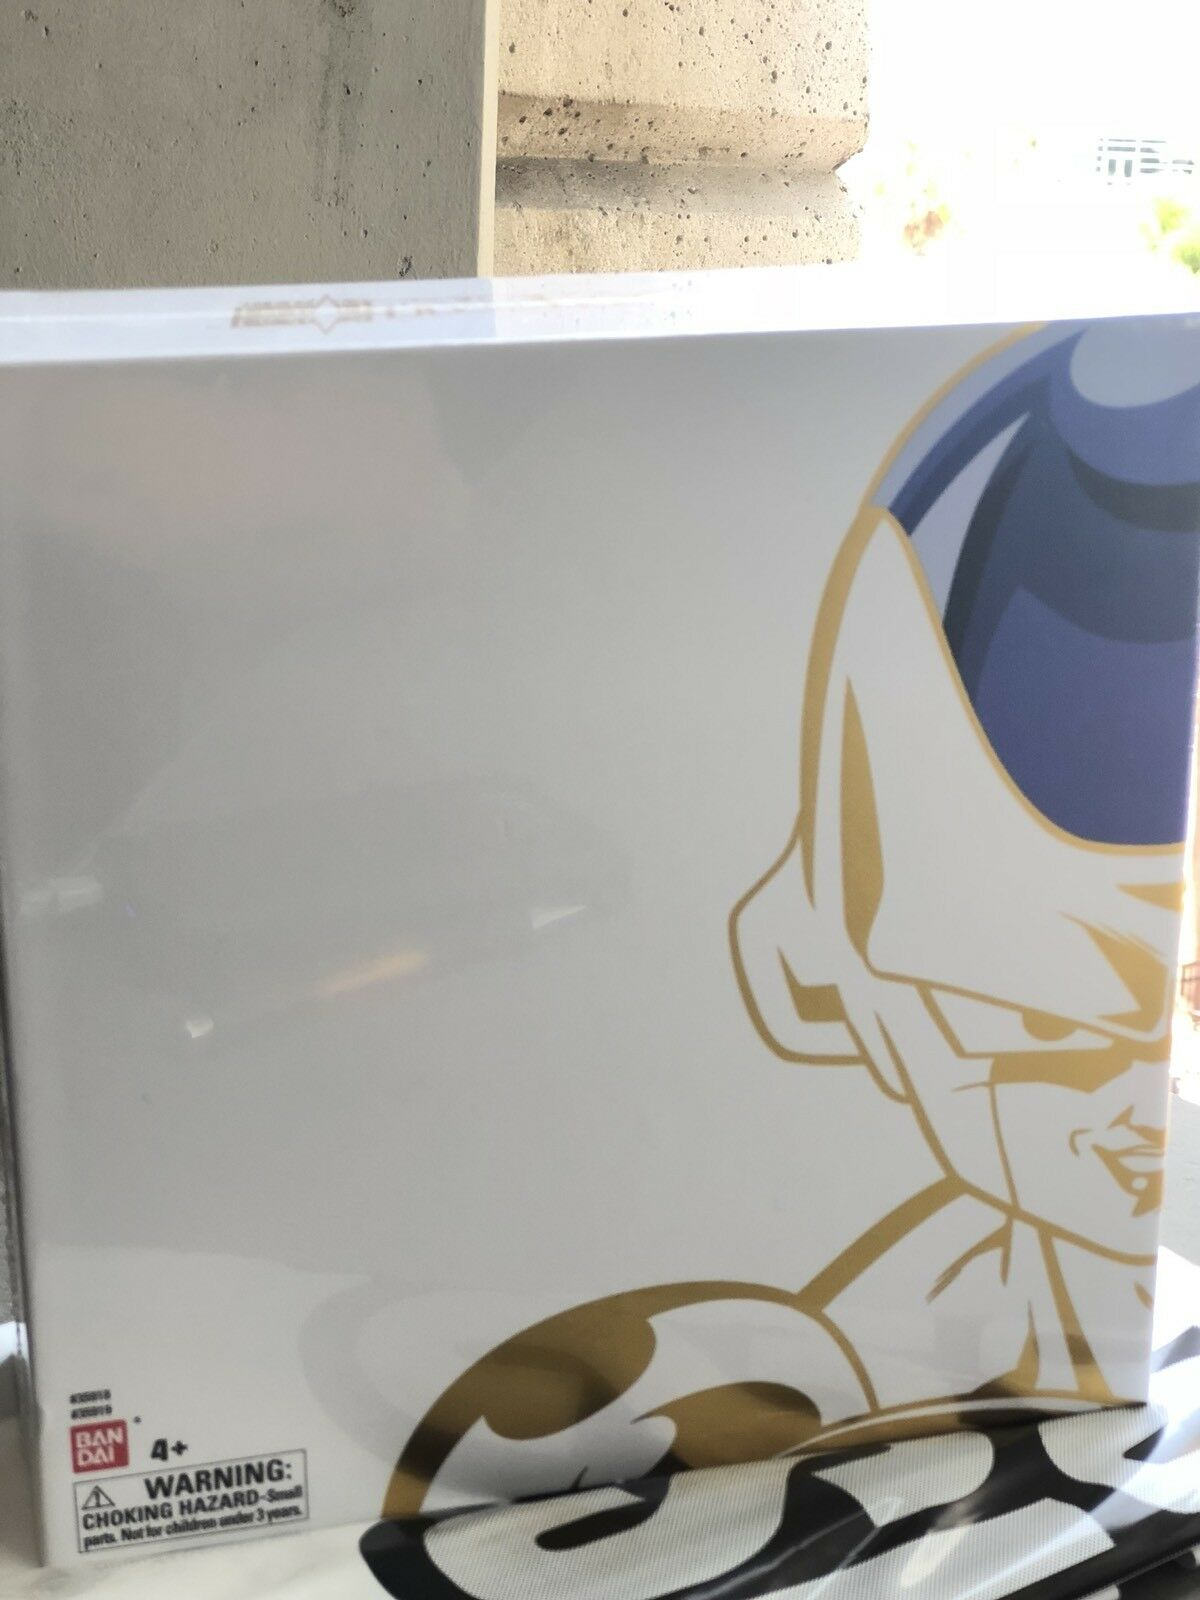 SDCC 2018 Exclusive DRAGONBALL Z - THE goldEN FRIEZA Edition Scouter (IN HAND)